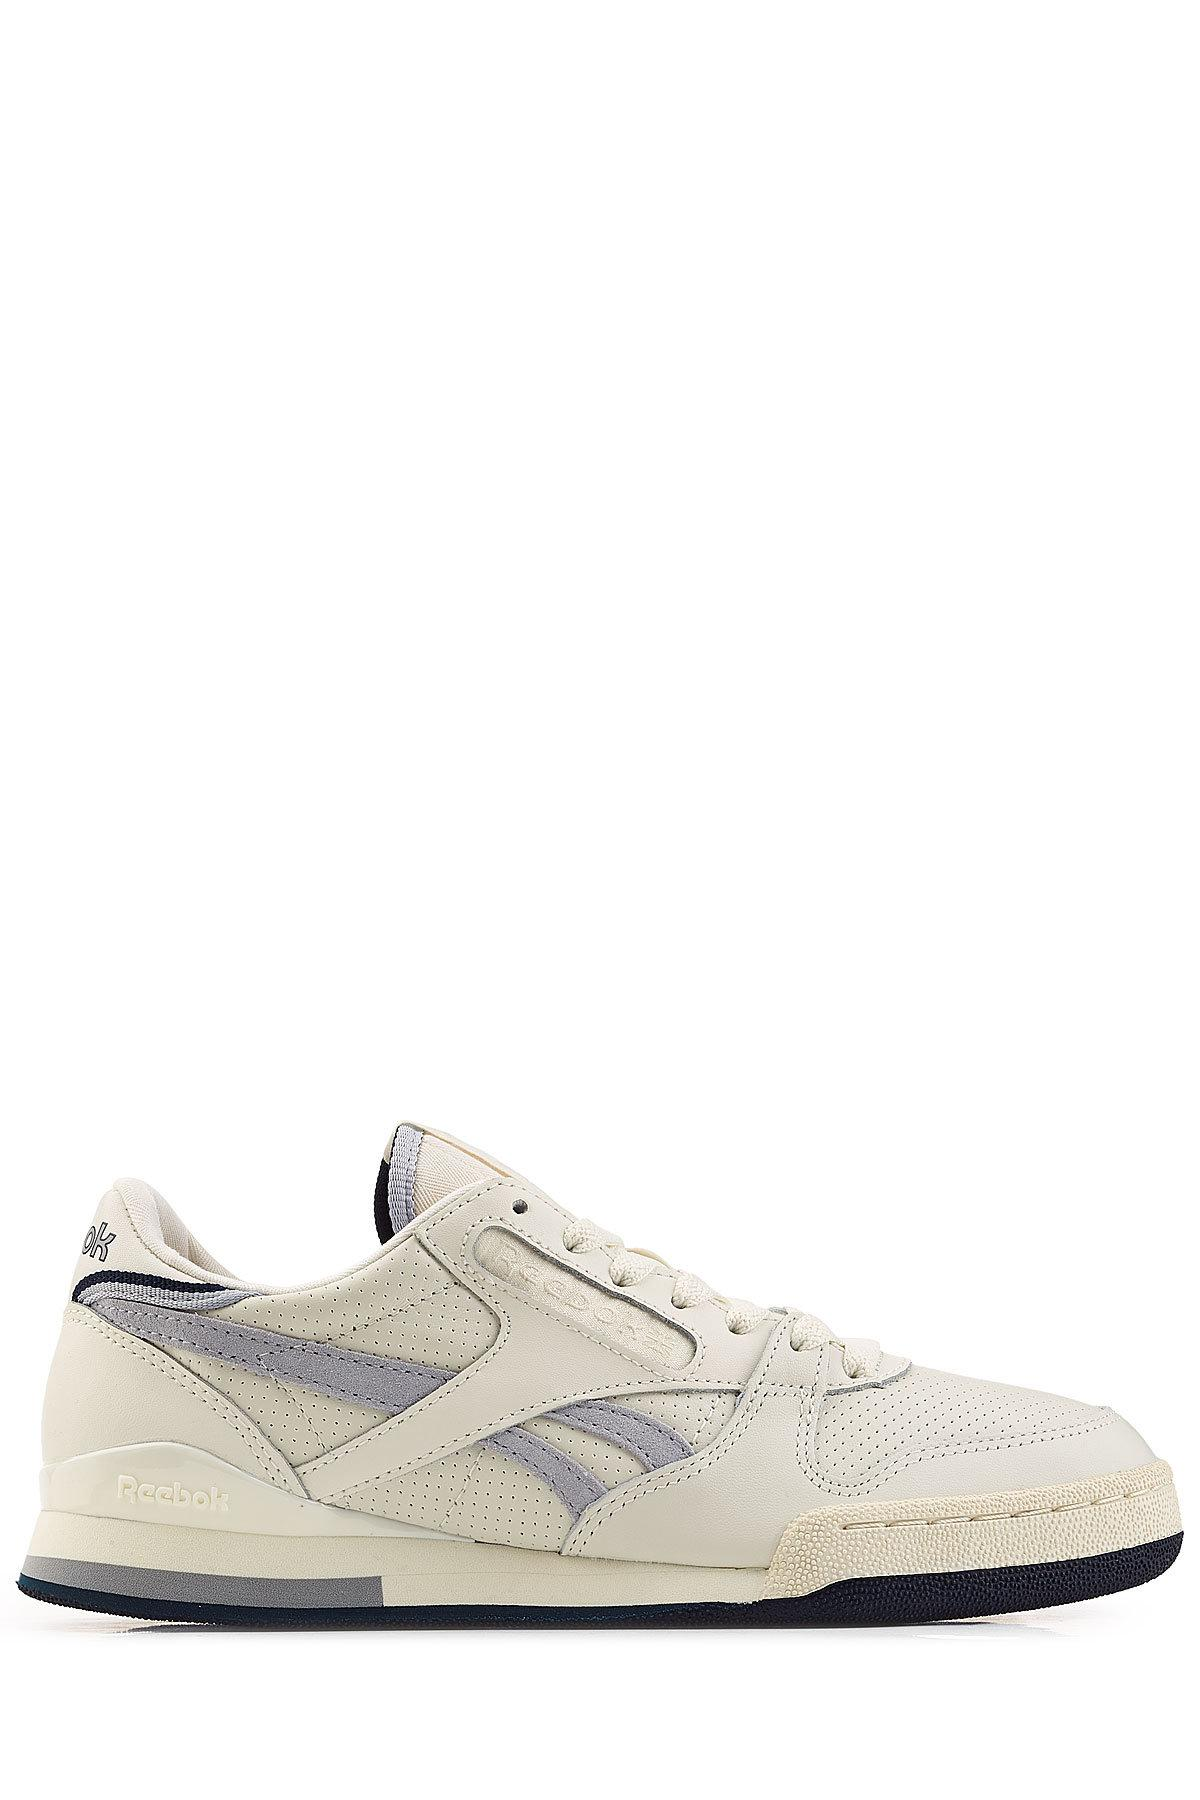 Reebok - Multicolor Phase 1 Pro Thof Sneakers With Leather for Men - Lyst.  View fullscreen 3ee260593